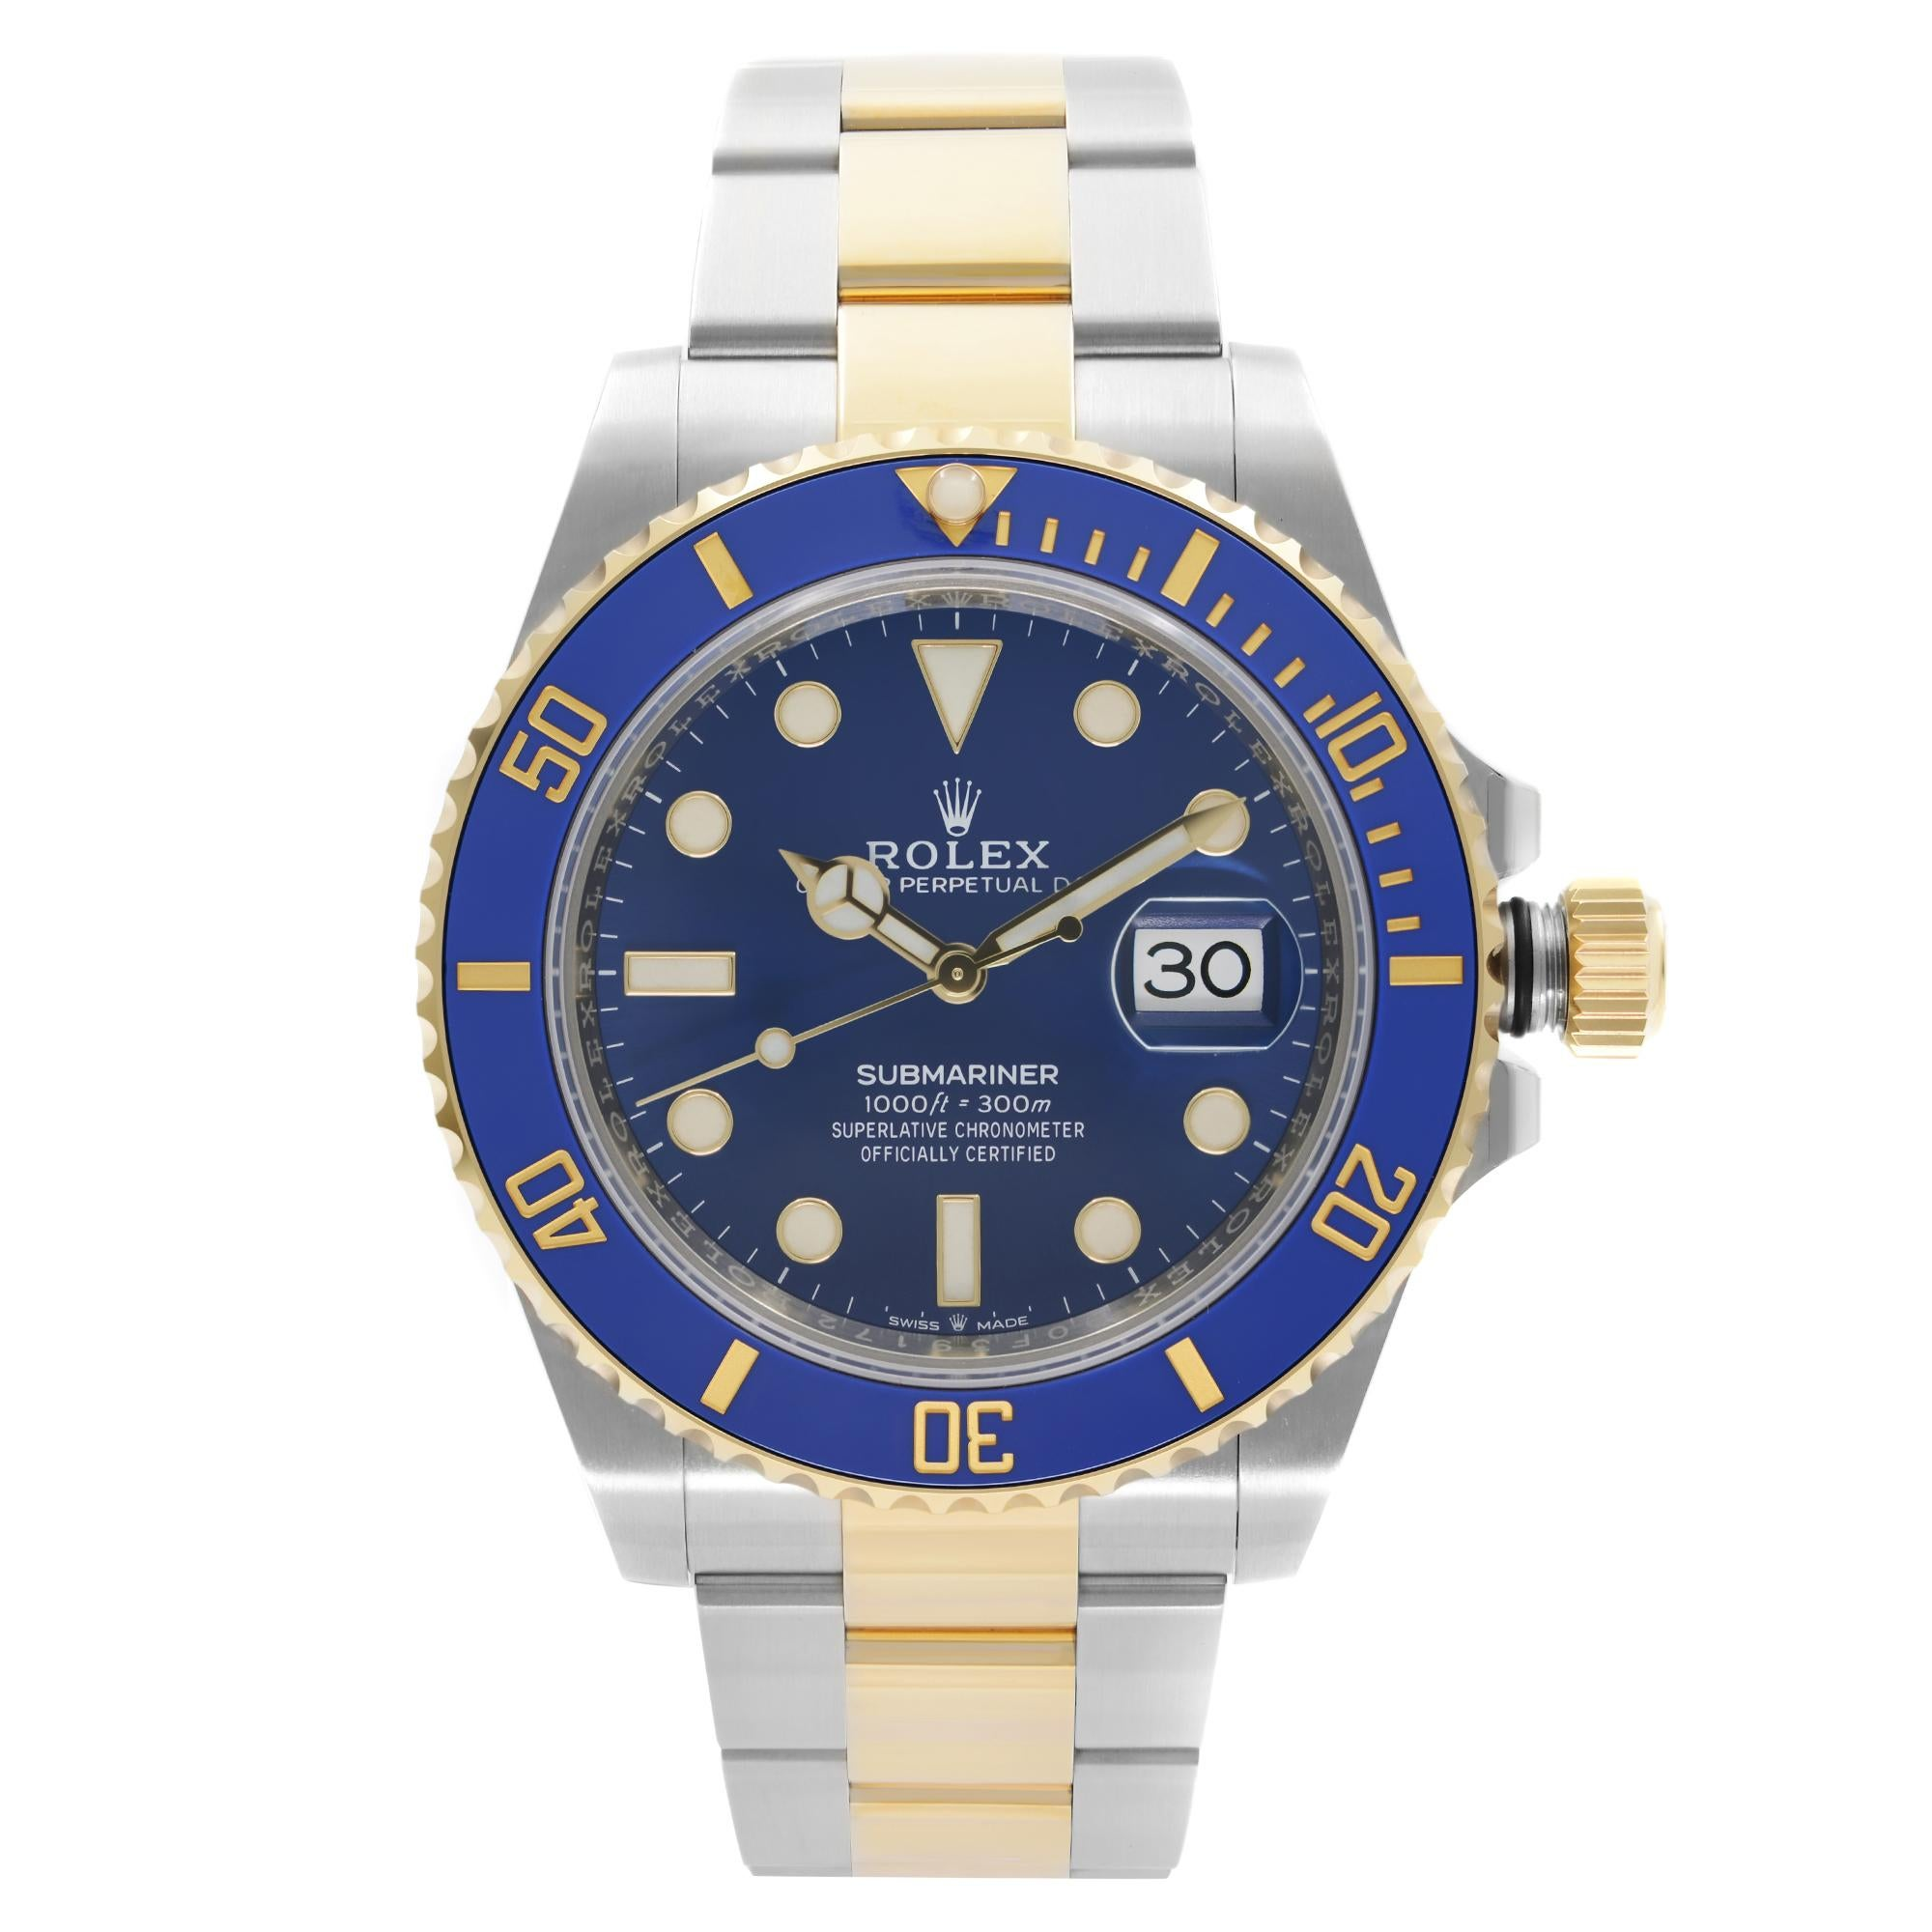 Rolex Submariner Steel 18K Yellow Gold Blue Dial Automatic Watch 126613LB